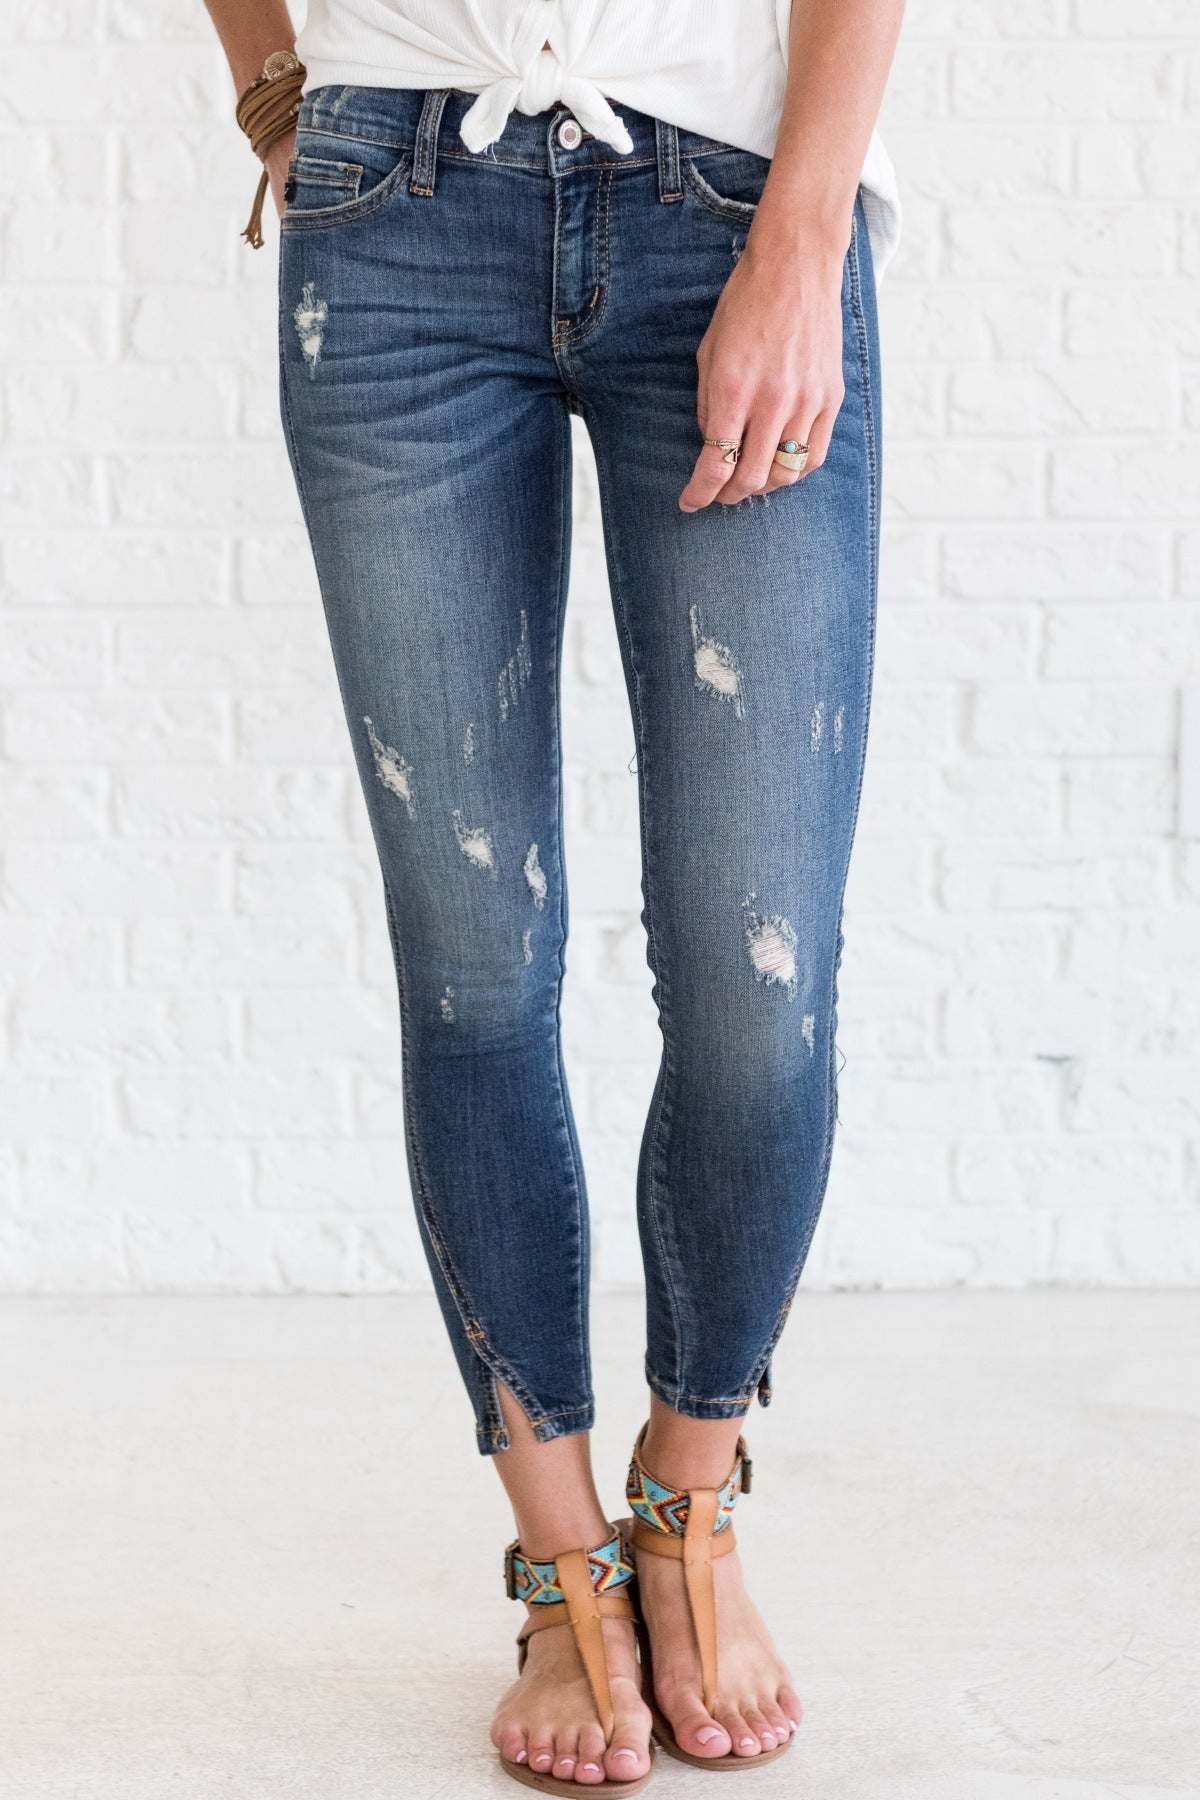 Ankle Slit Boutique Jeans